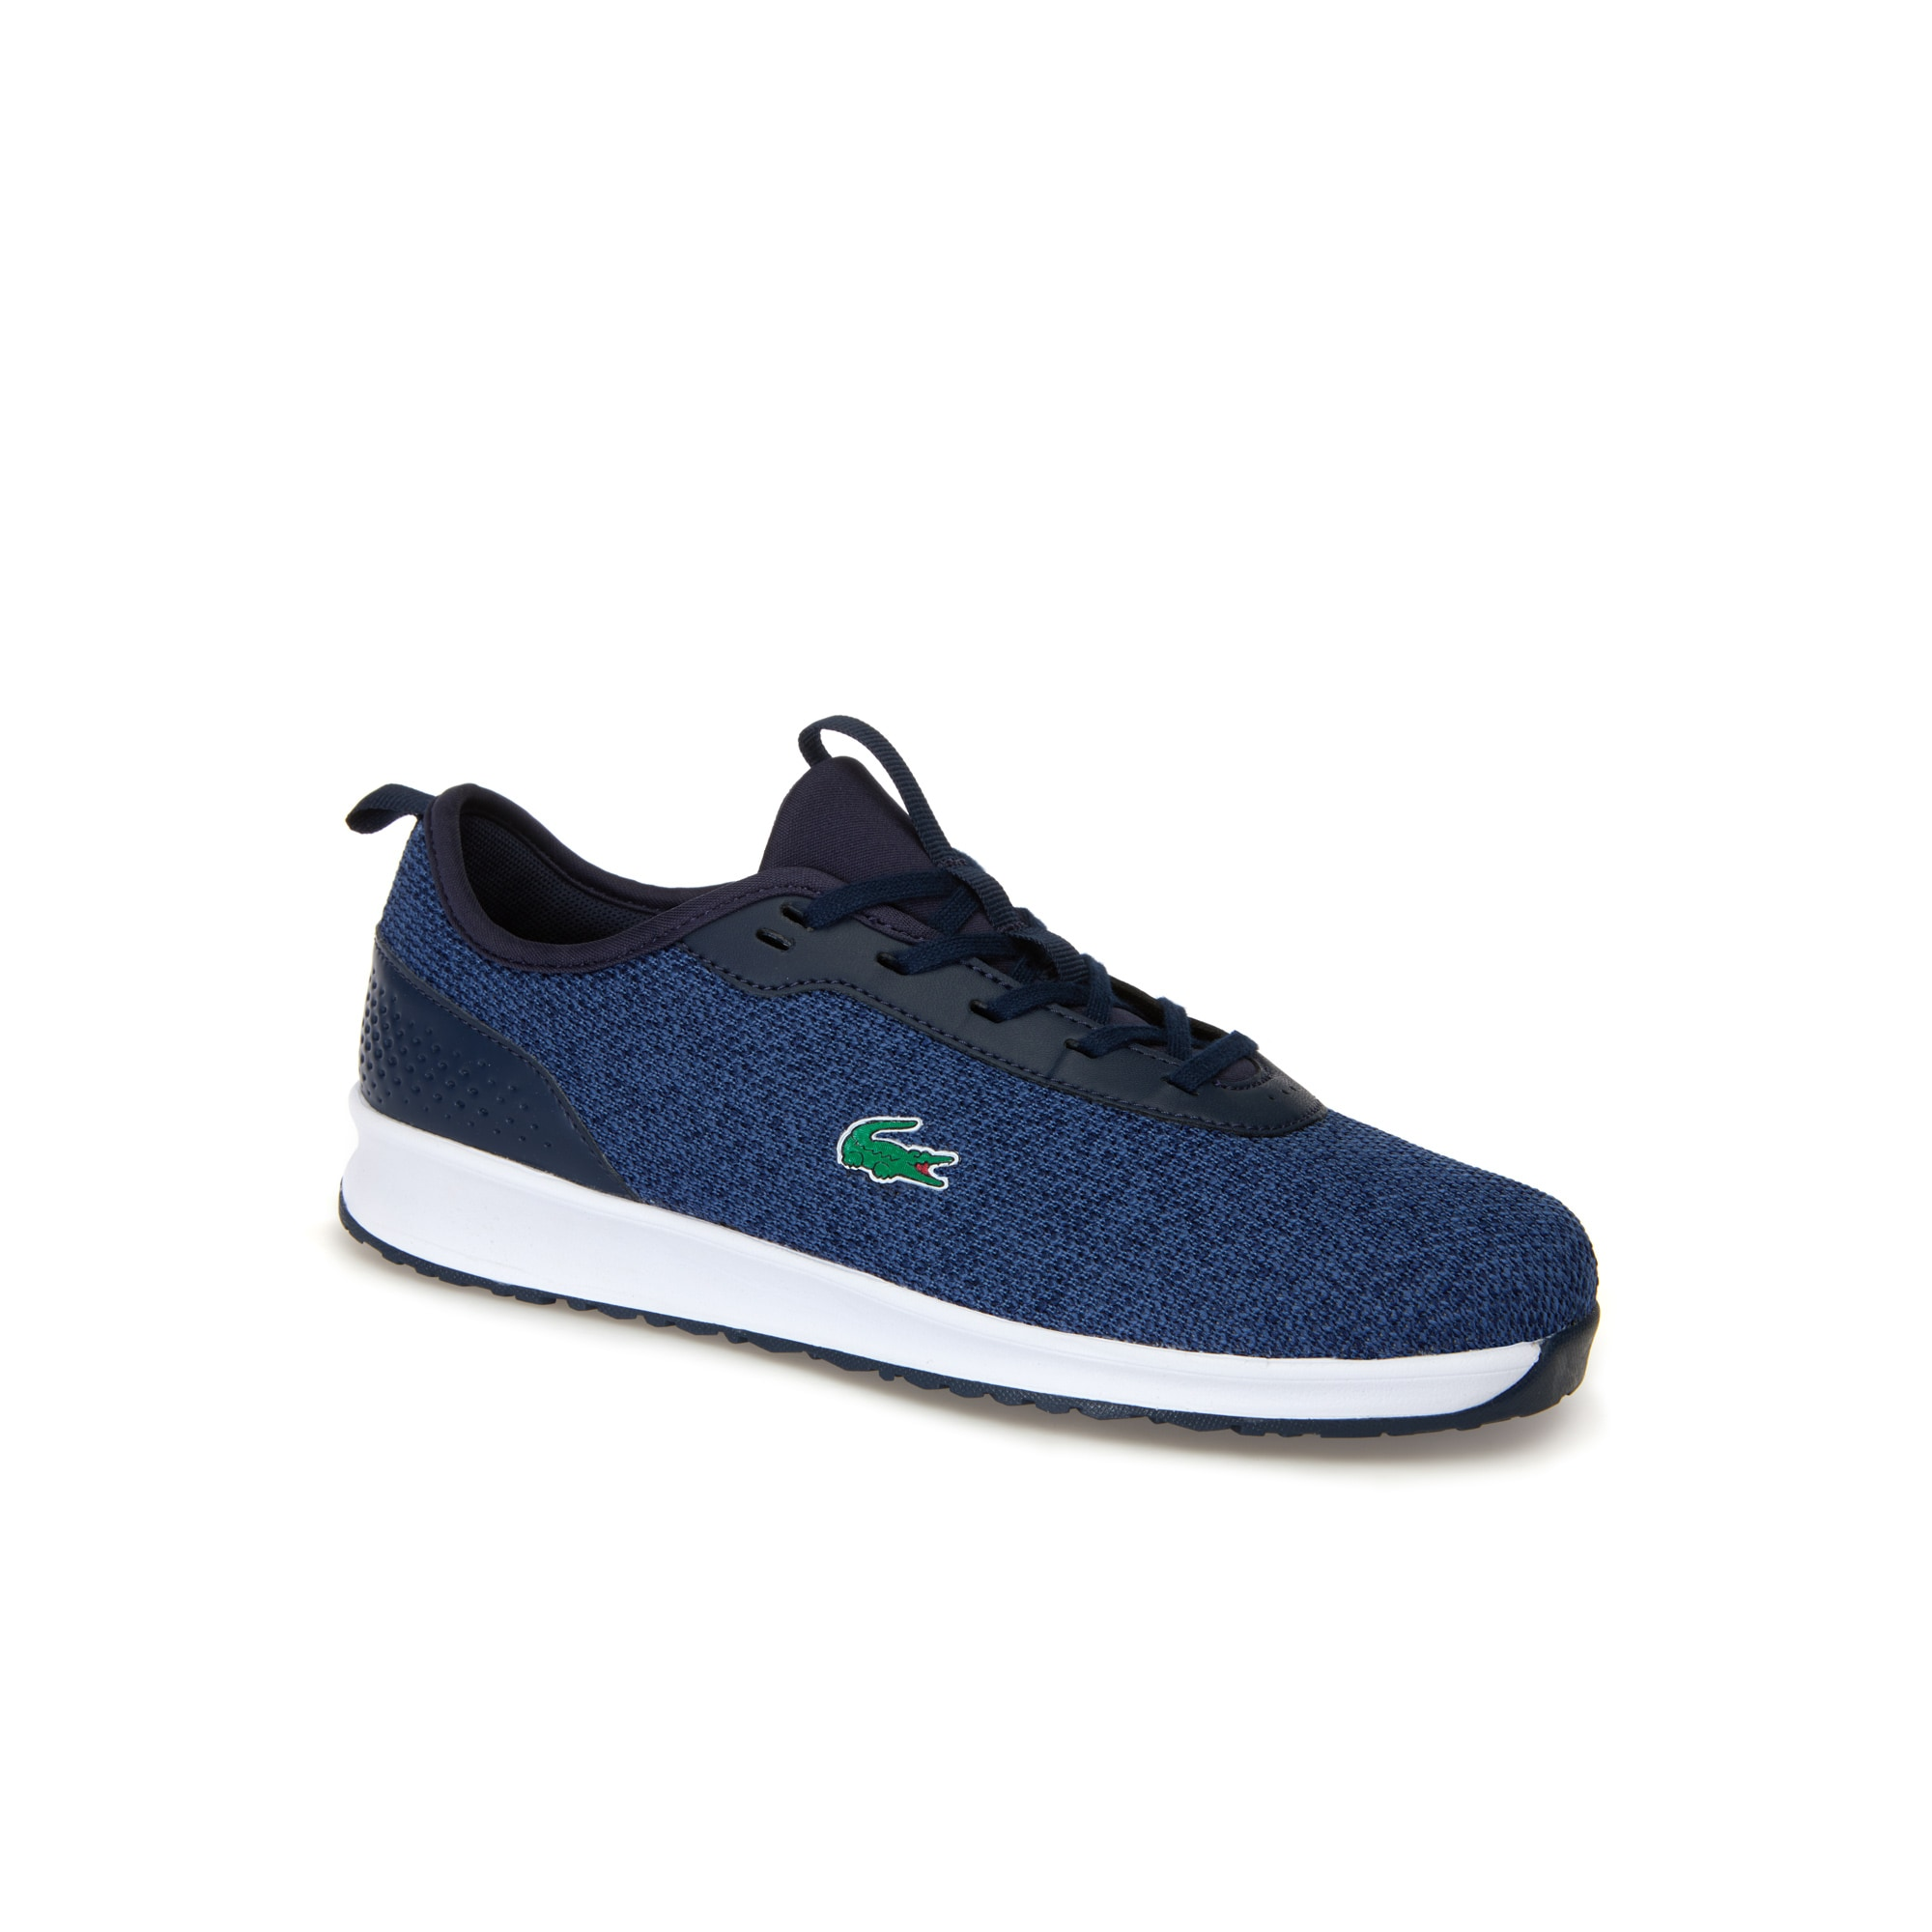 Zapatillas junior LT Spirit 2.0 de material textil